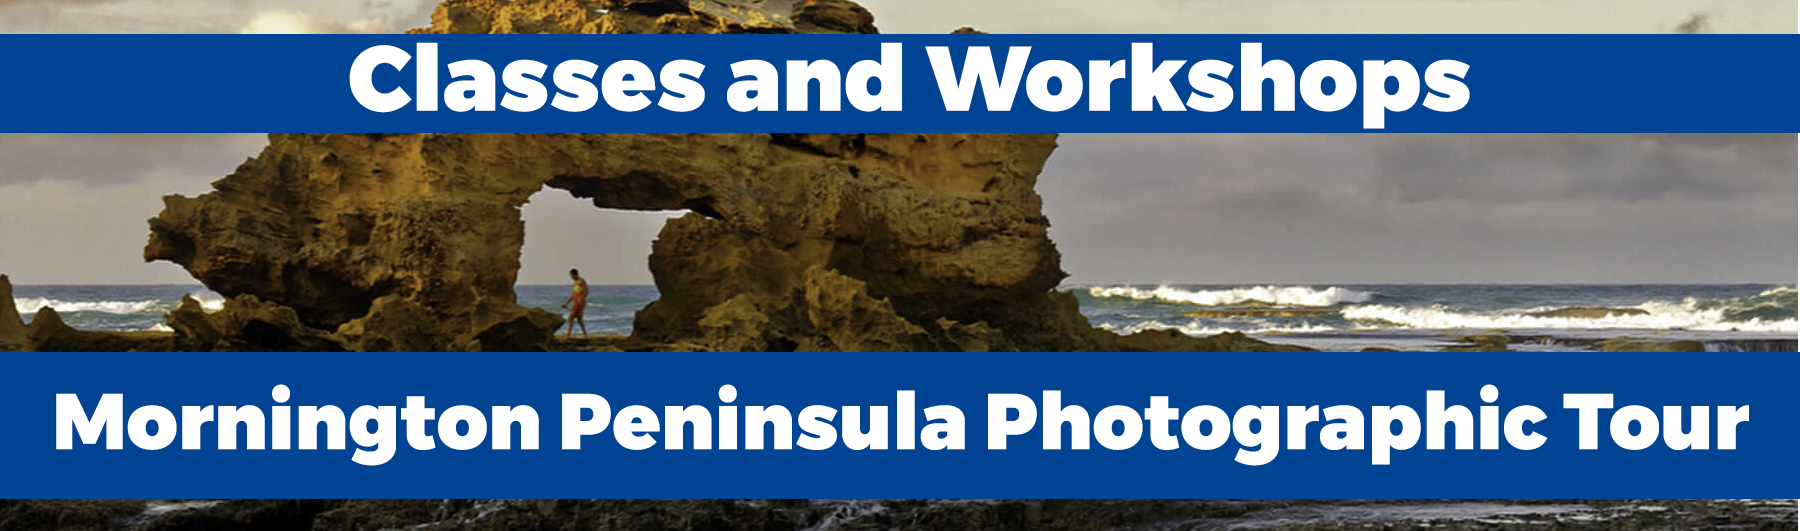 Mornington Peninsula Photographic Tour